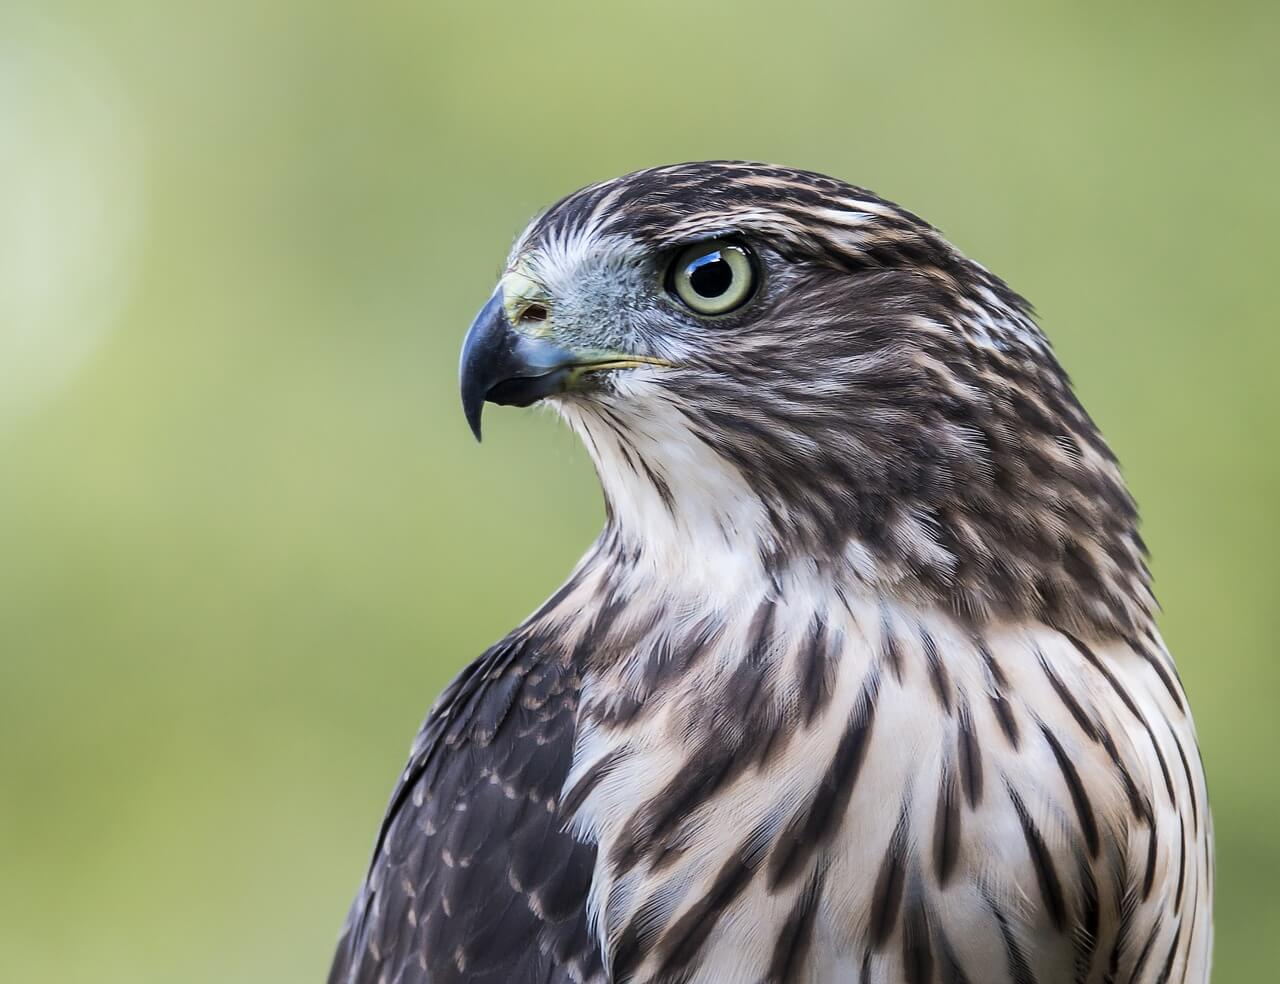 https://pixabay.com/en/hawk-bird-profile-nature-cooper-s-2714674/